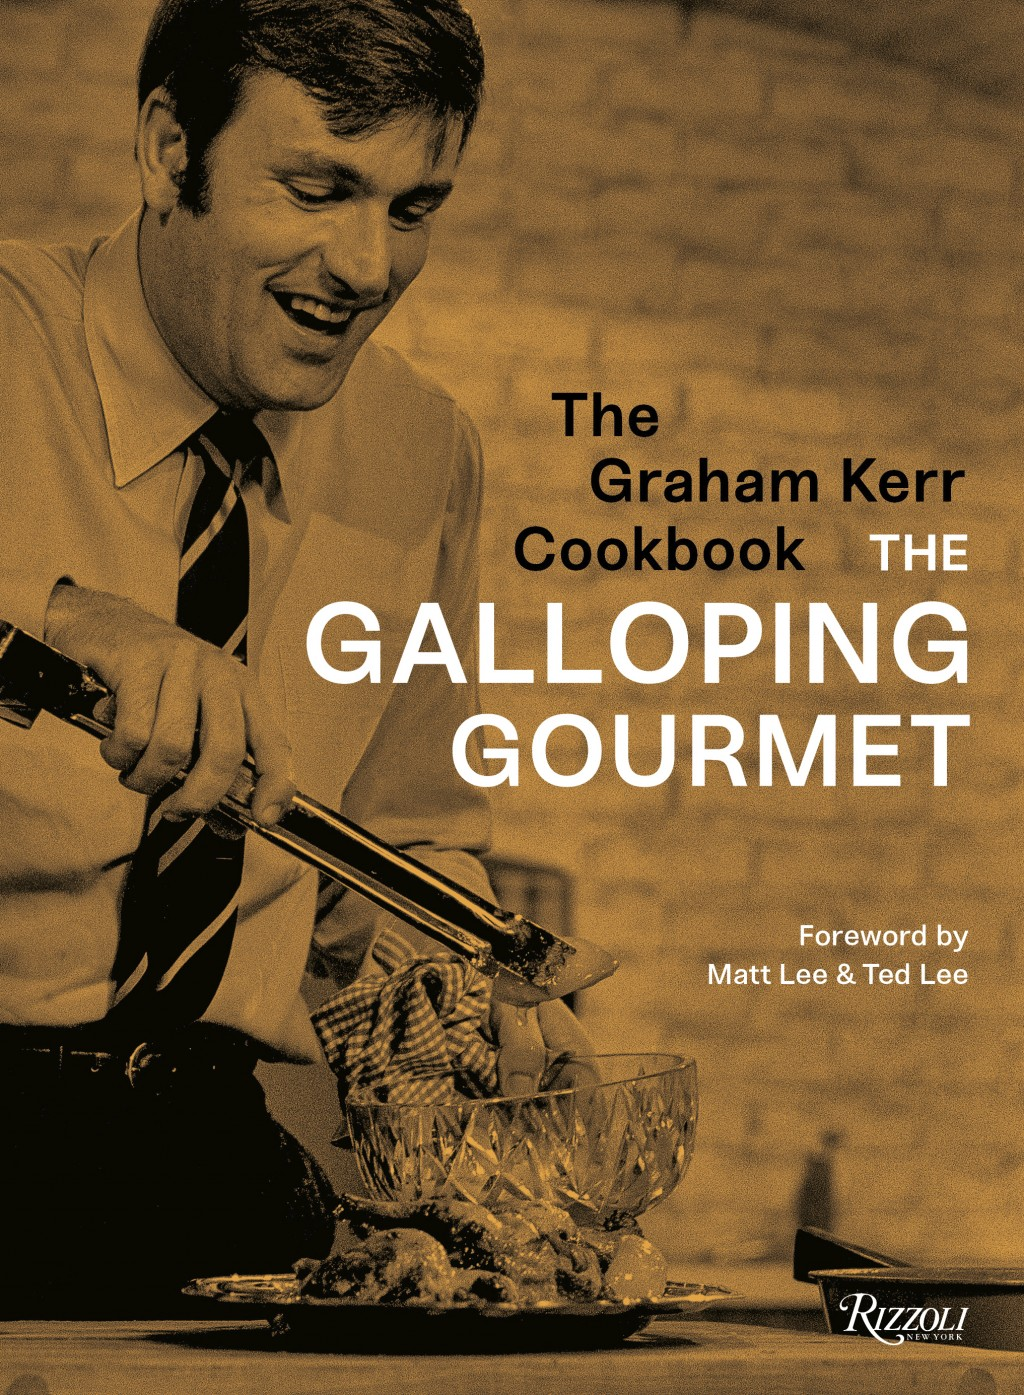 """This image released by Rizzoli USA shows """"The Graham Kerr Cookbook: by The Galloping Gourmet,"""" by Graham Kerr and Matt Lee. (Rizzoli USA via AP)"""